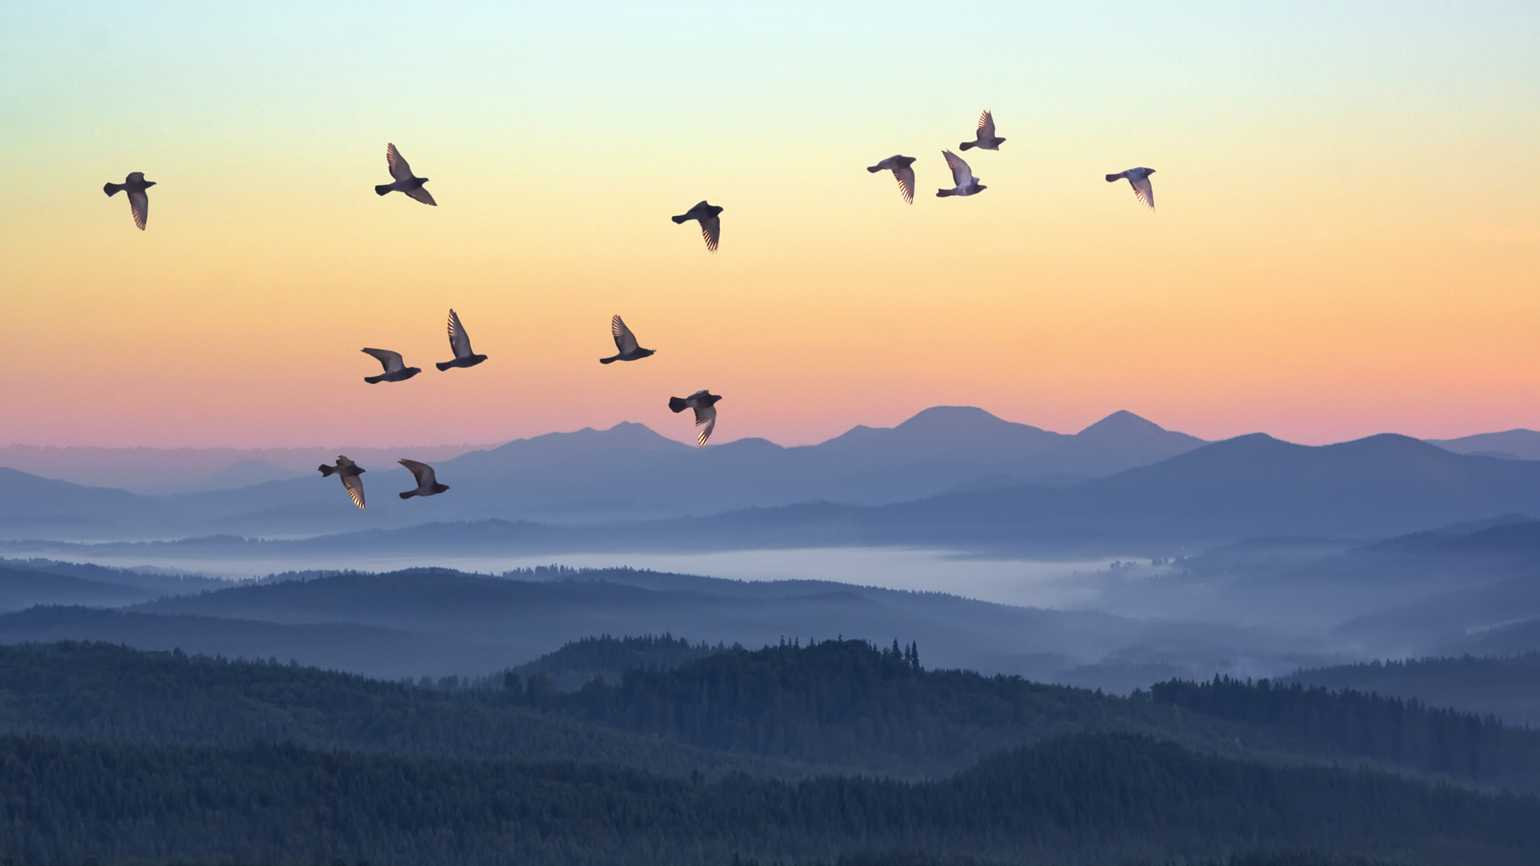 Birds flying during sunrise; Getty Images